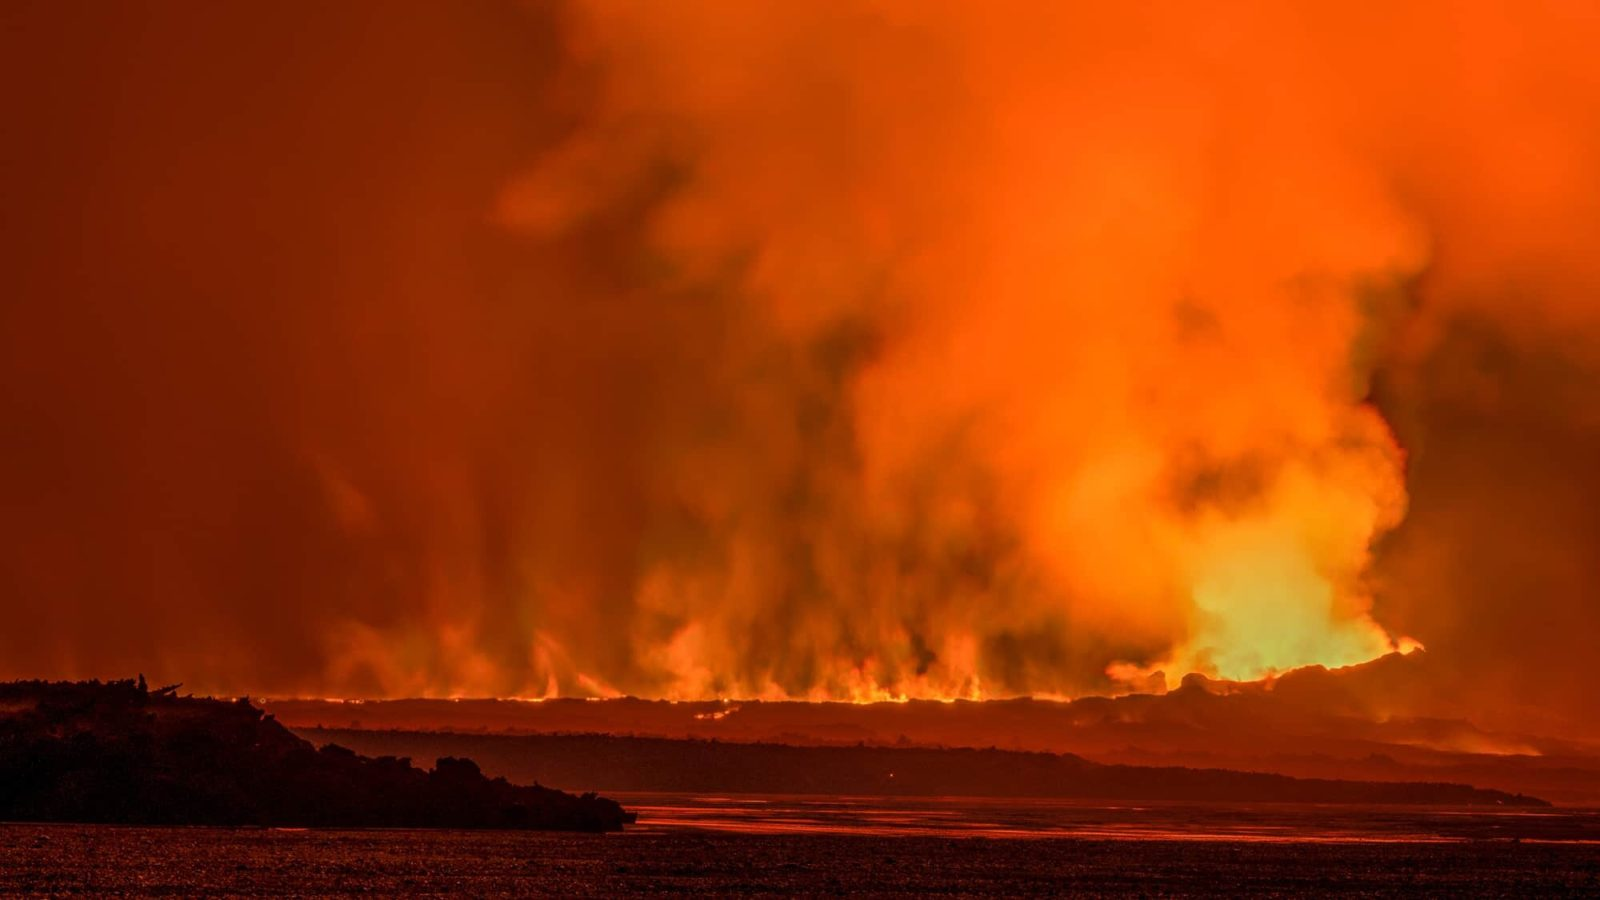 The Holuhraun eruption got pretty intense.